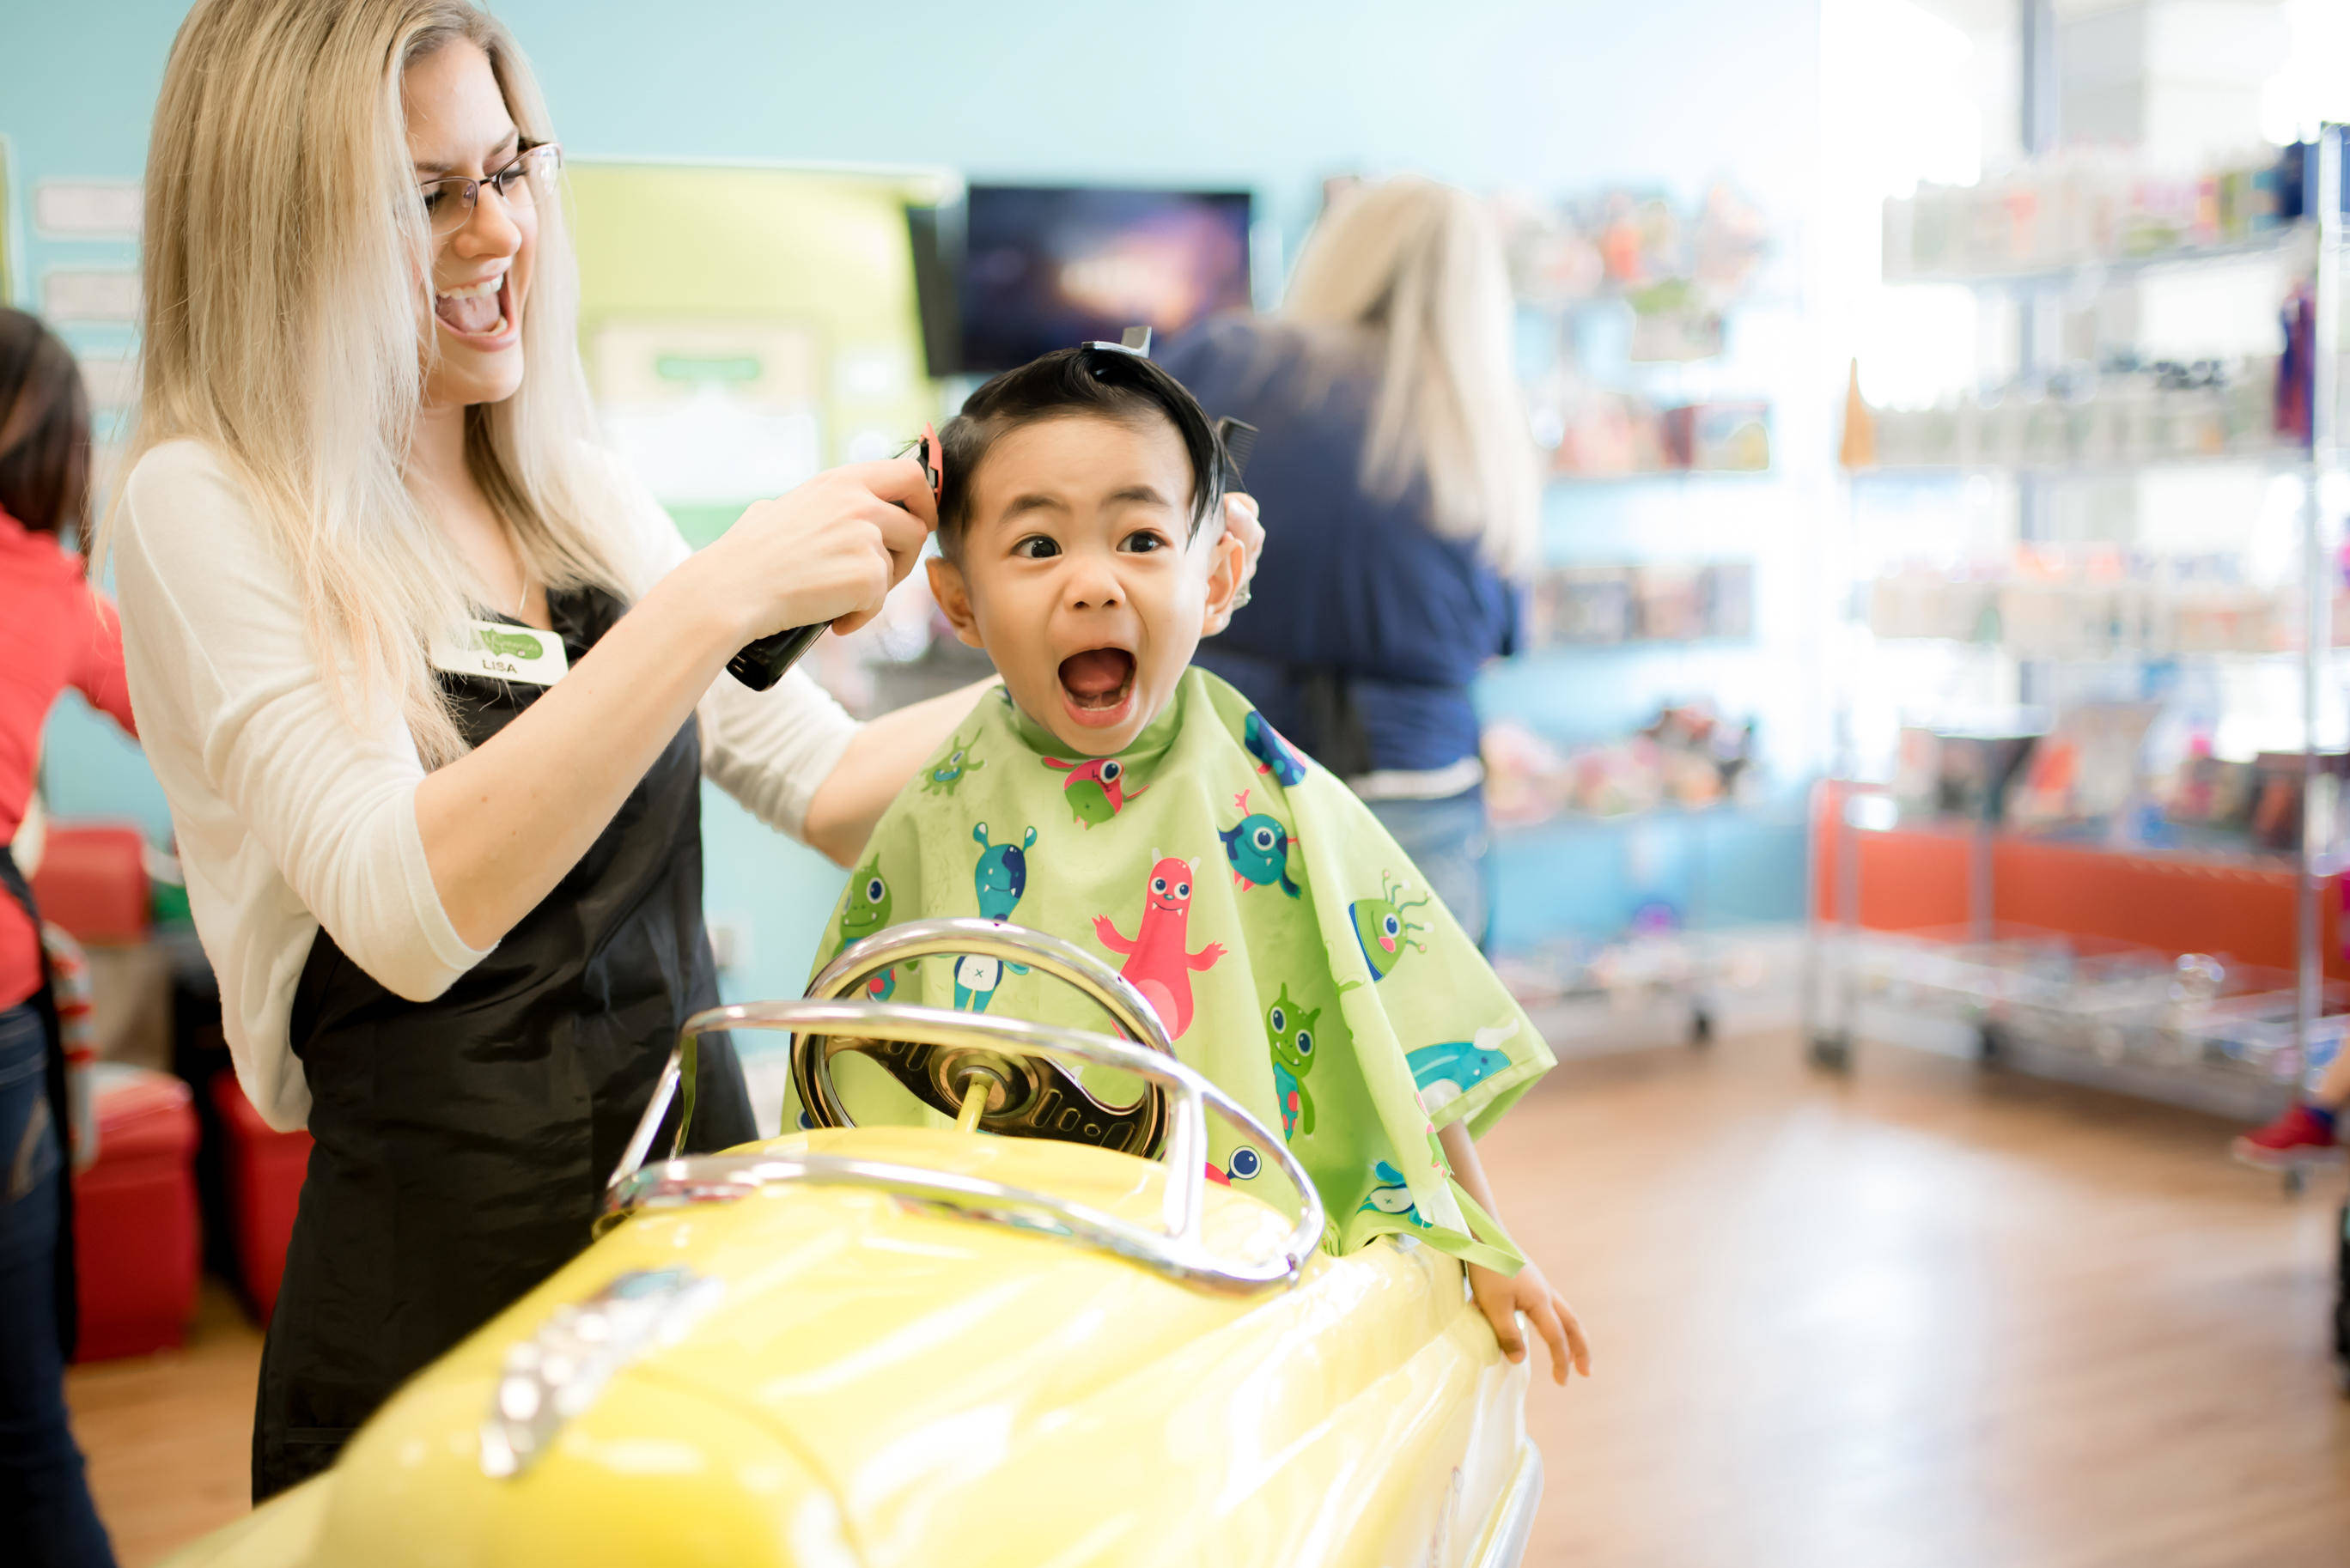 Haircuts for kids in Danville CA